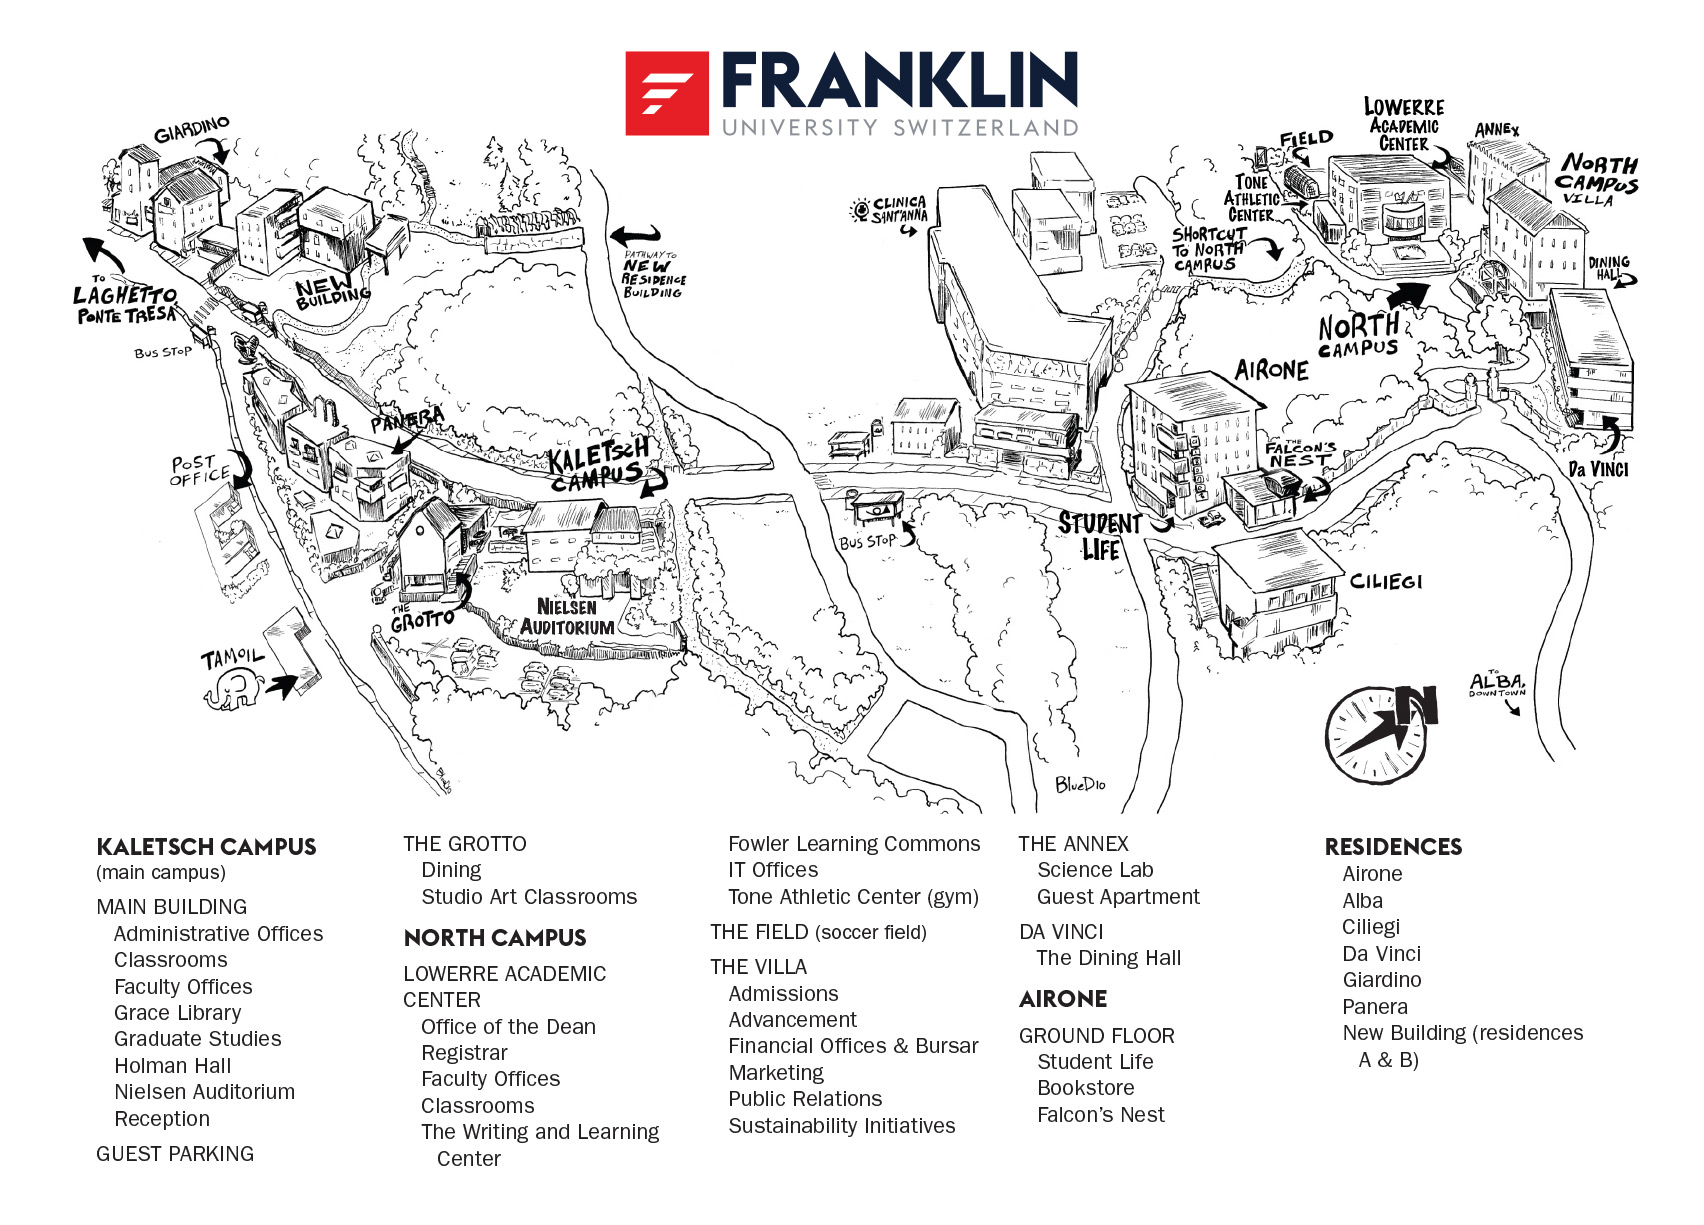 franklin university campus map Campus Maps Fus franklin university campus map